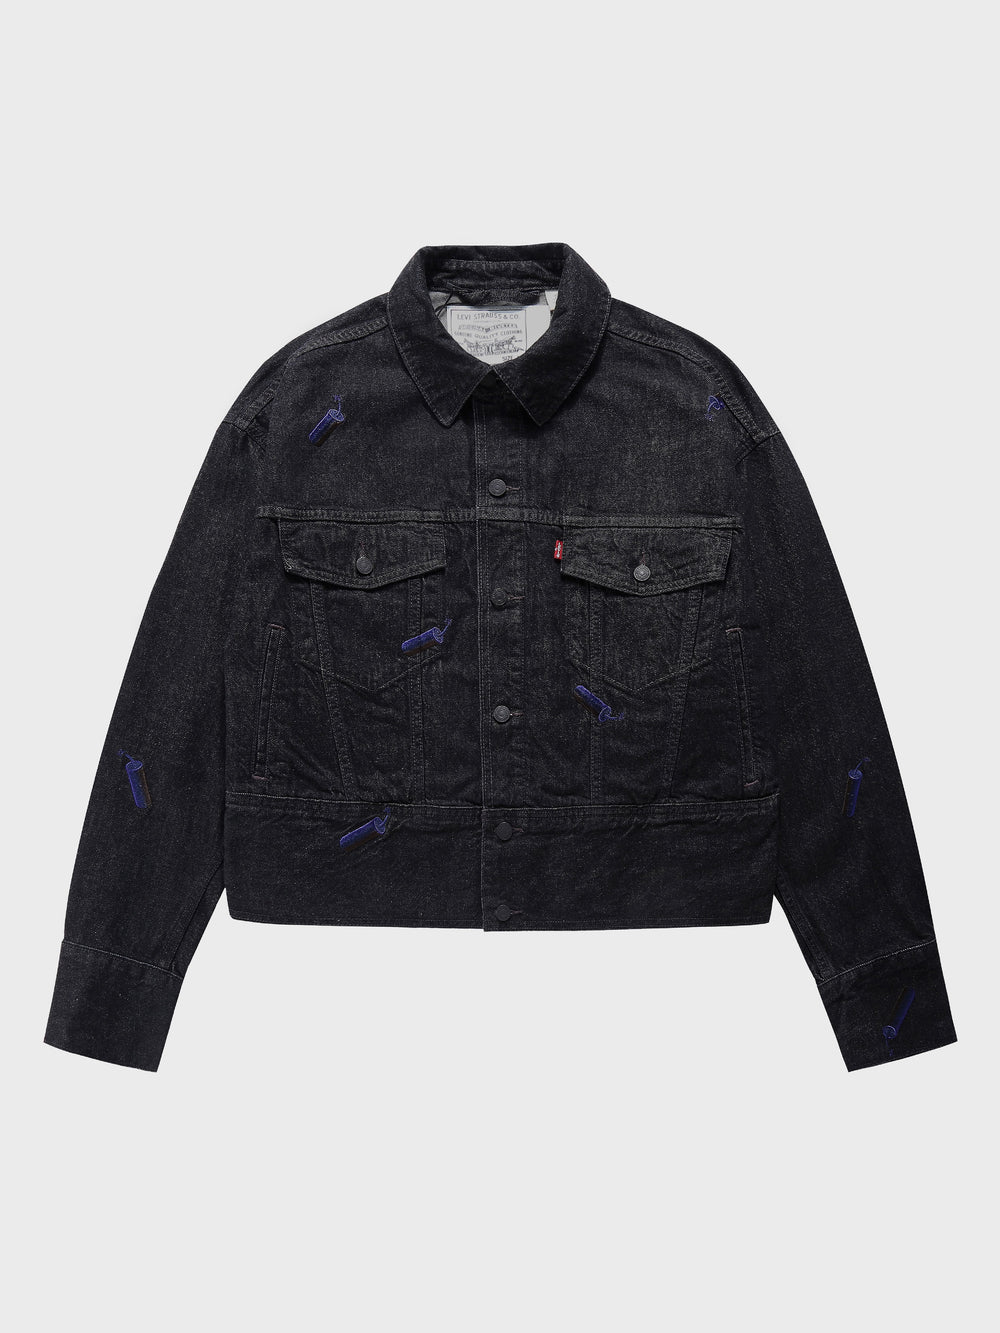 Feng Chen Wang × Levi's > Cropped Denim Trucker Jacket